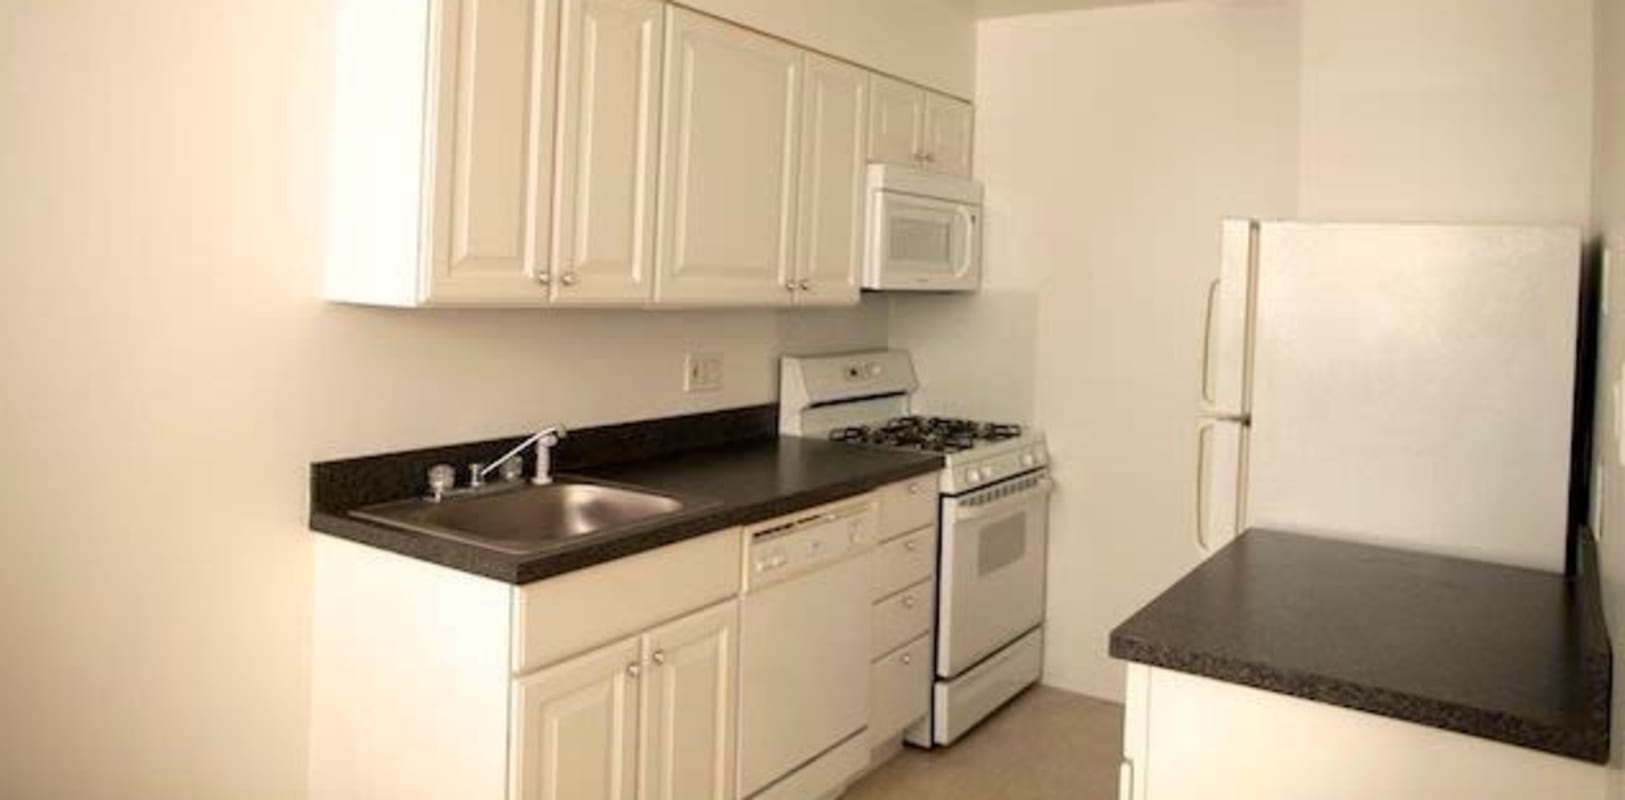 White kitchen cabinets with nice black countertops at Marina Park Apartments in Collingswood, New Jersey